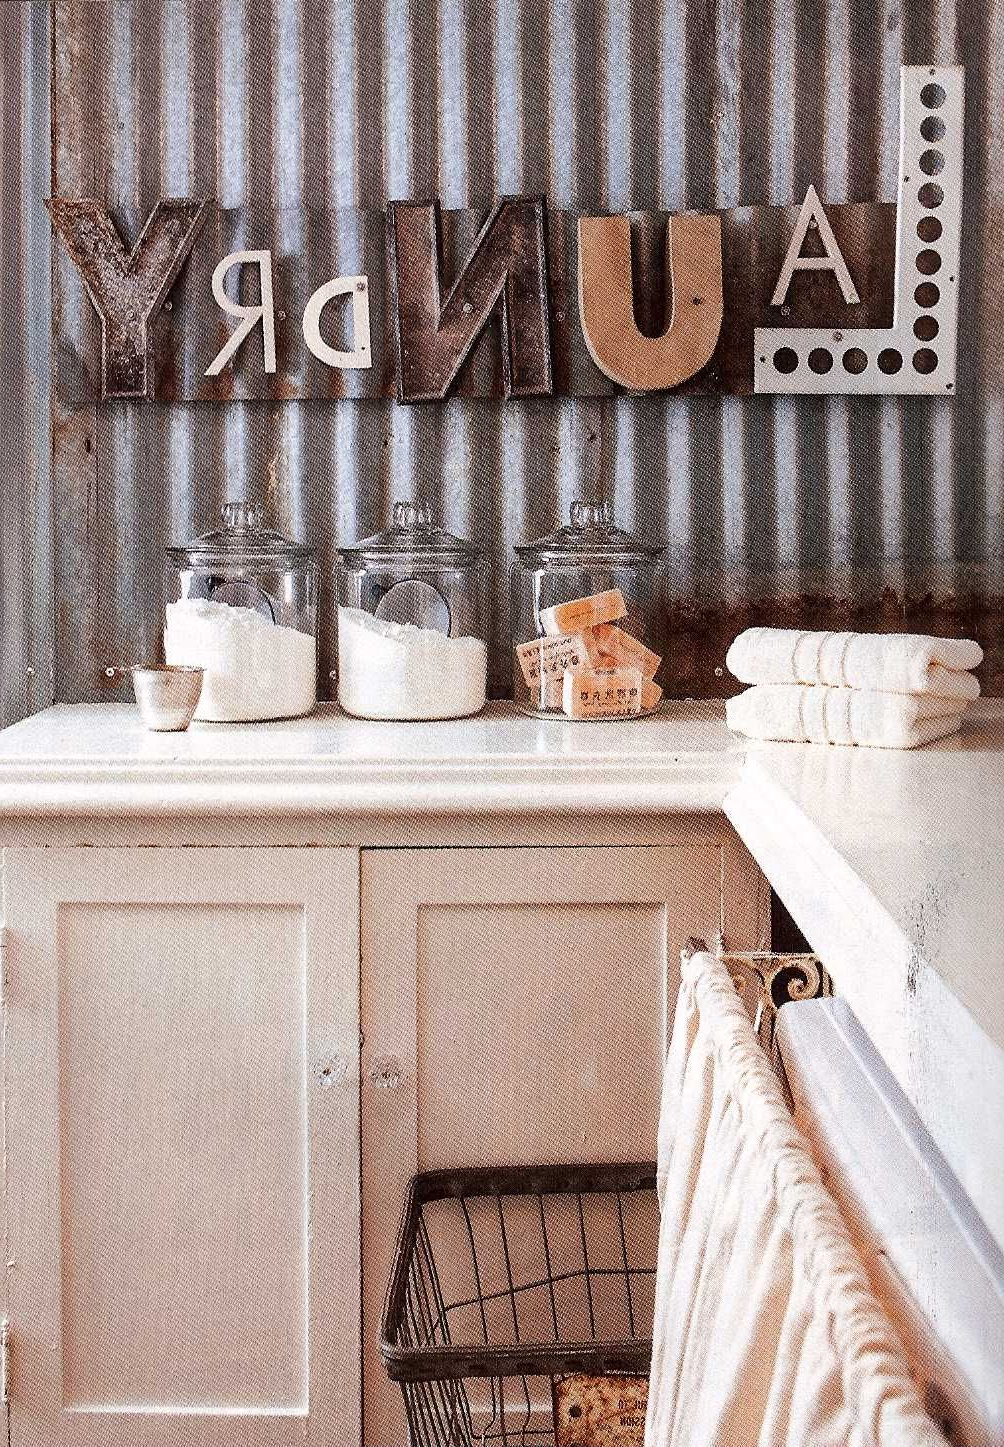 Preferred Fabulous Laundry Room With Laundry Repurposed Letters As Wall Decor Intended For Metal Laundry Room Wall Decor (View 18 of 20)